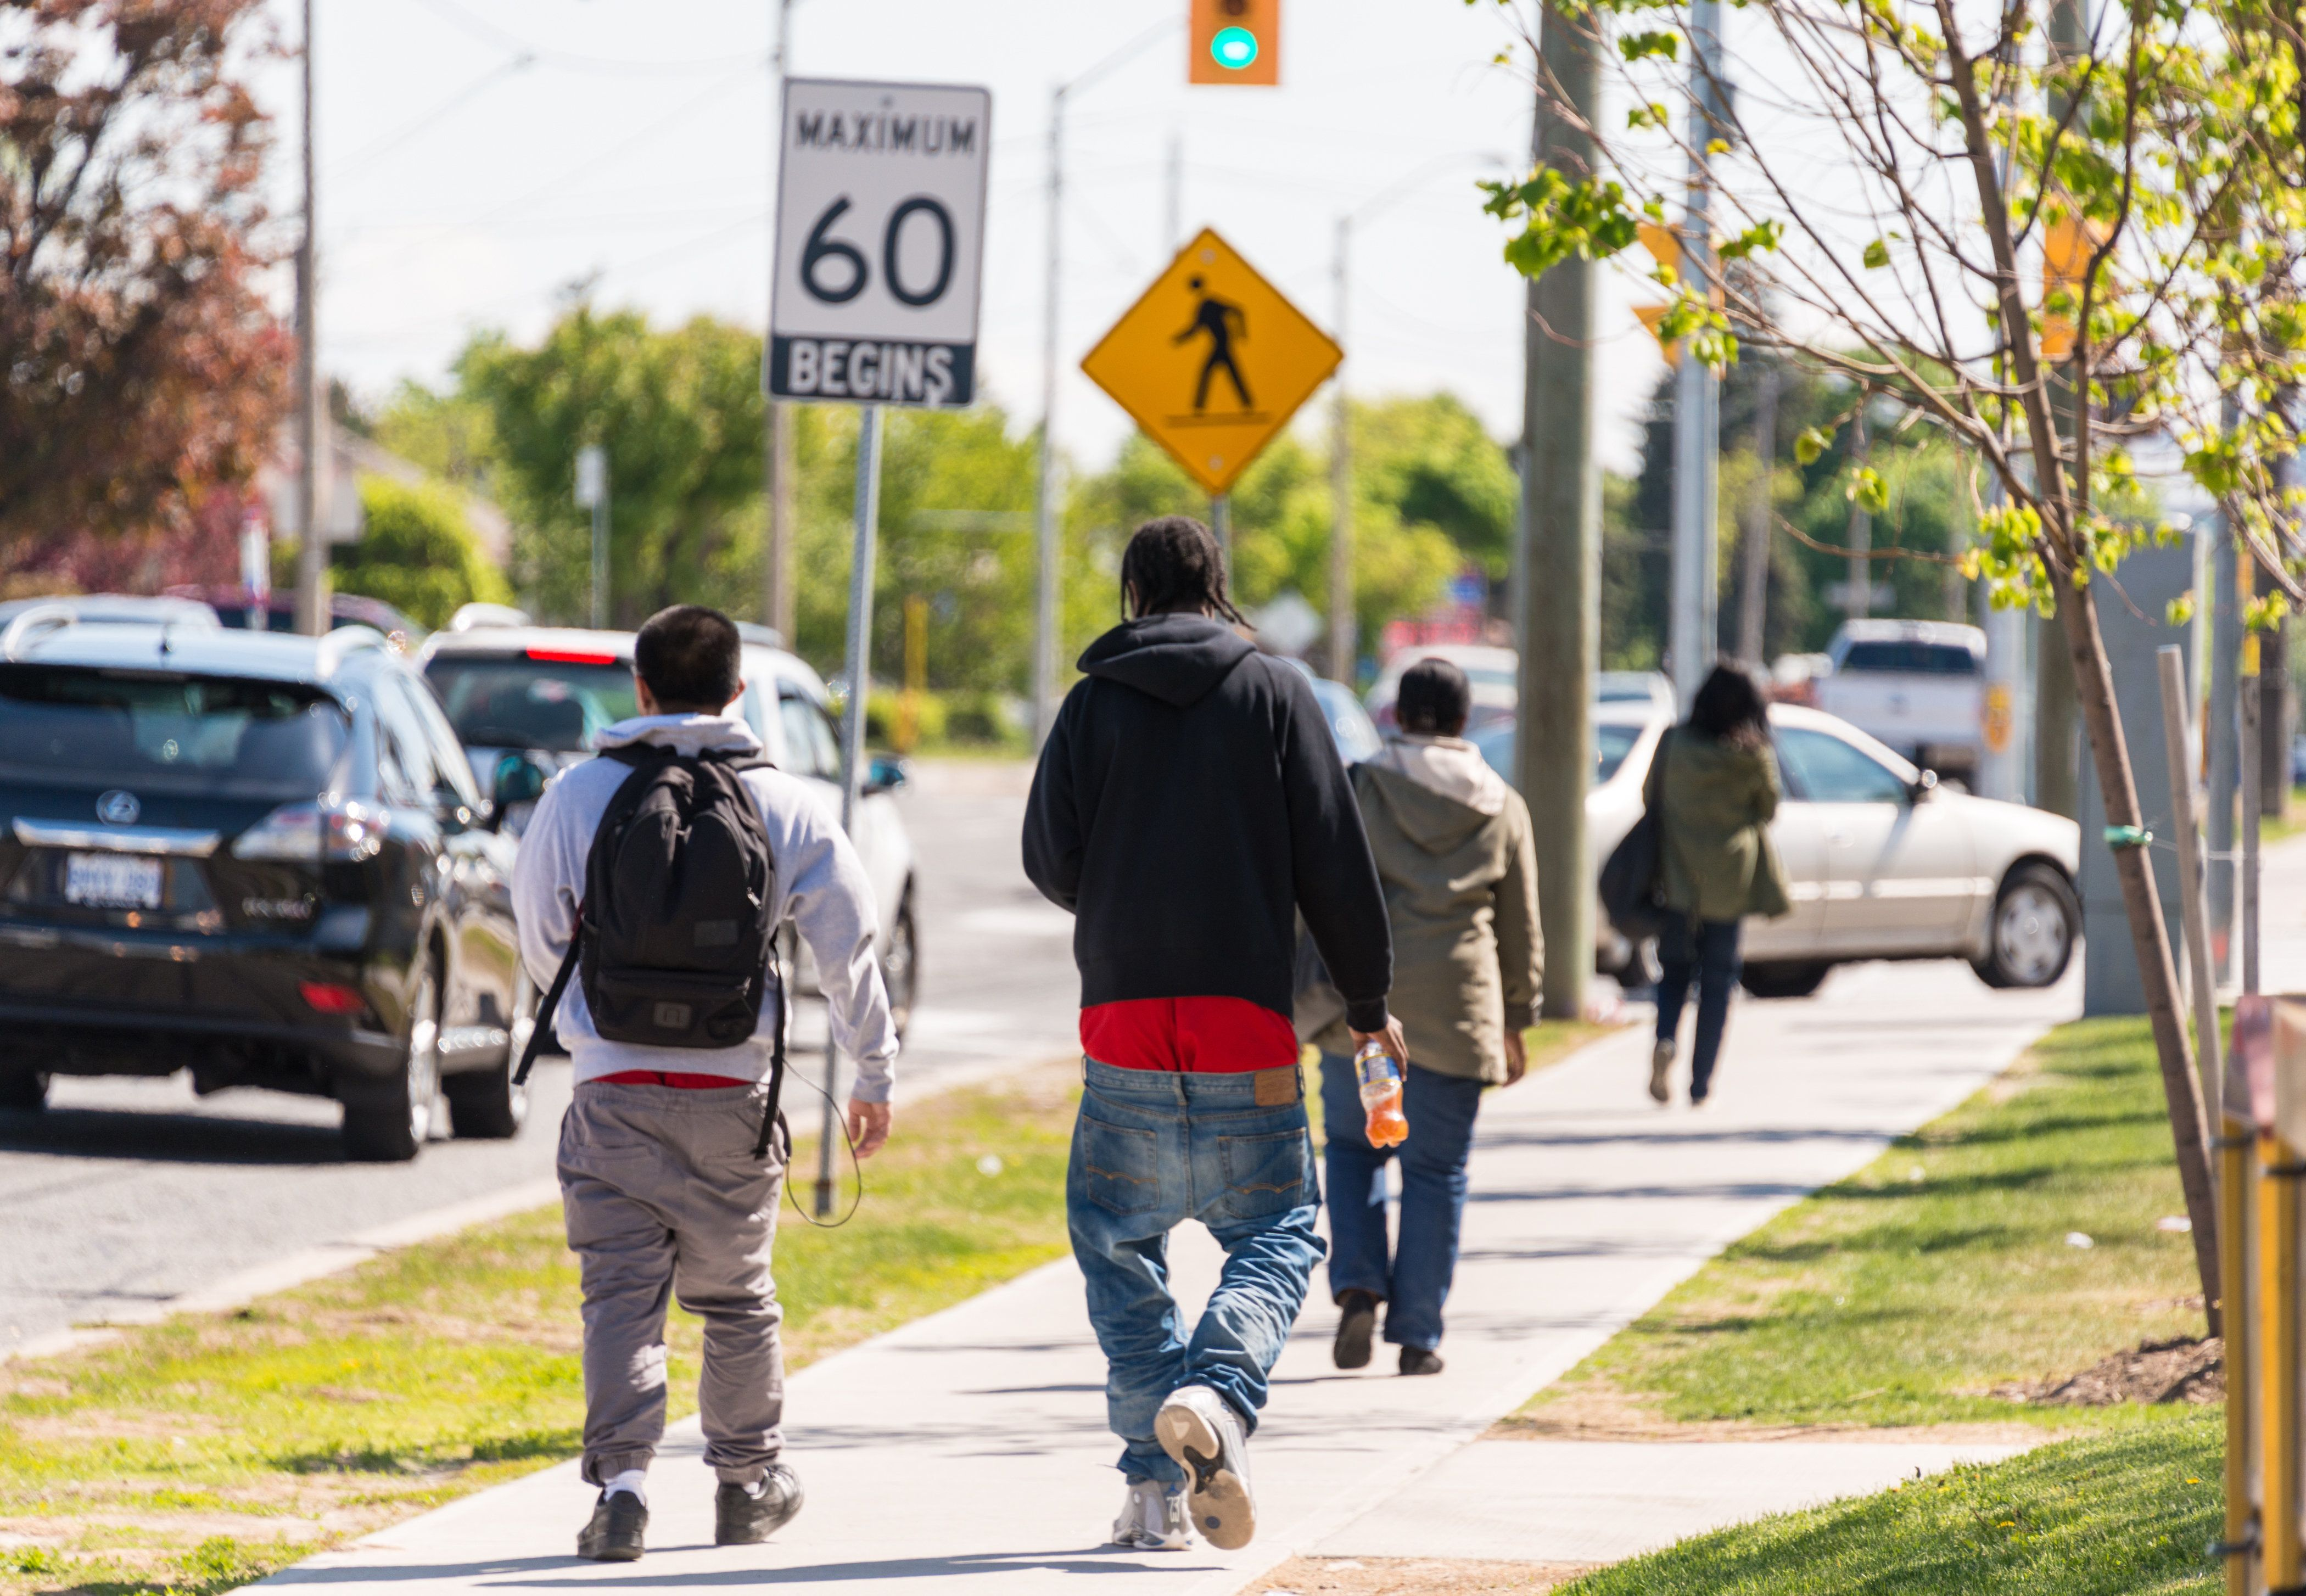 TORONTO, ONTARIO, CANADA - 2015/05/22: Youth walking on the street with low lowered pants. Sagging is a manner of wearing trousers or jeans which sag so that the top of the trousers or jeans are significantly below the waist, sometimes revealing much of the underwear. (Photo by Roberto Machado Noa/LightRocket via Getty Images)